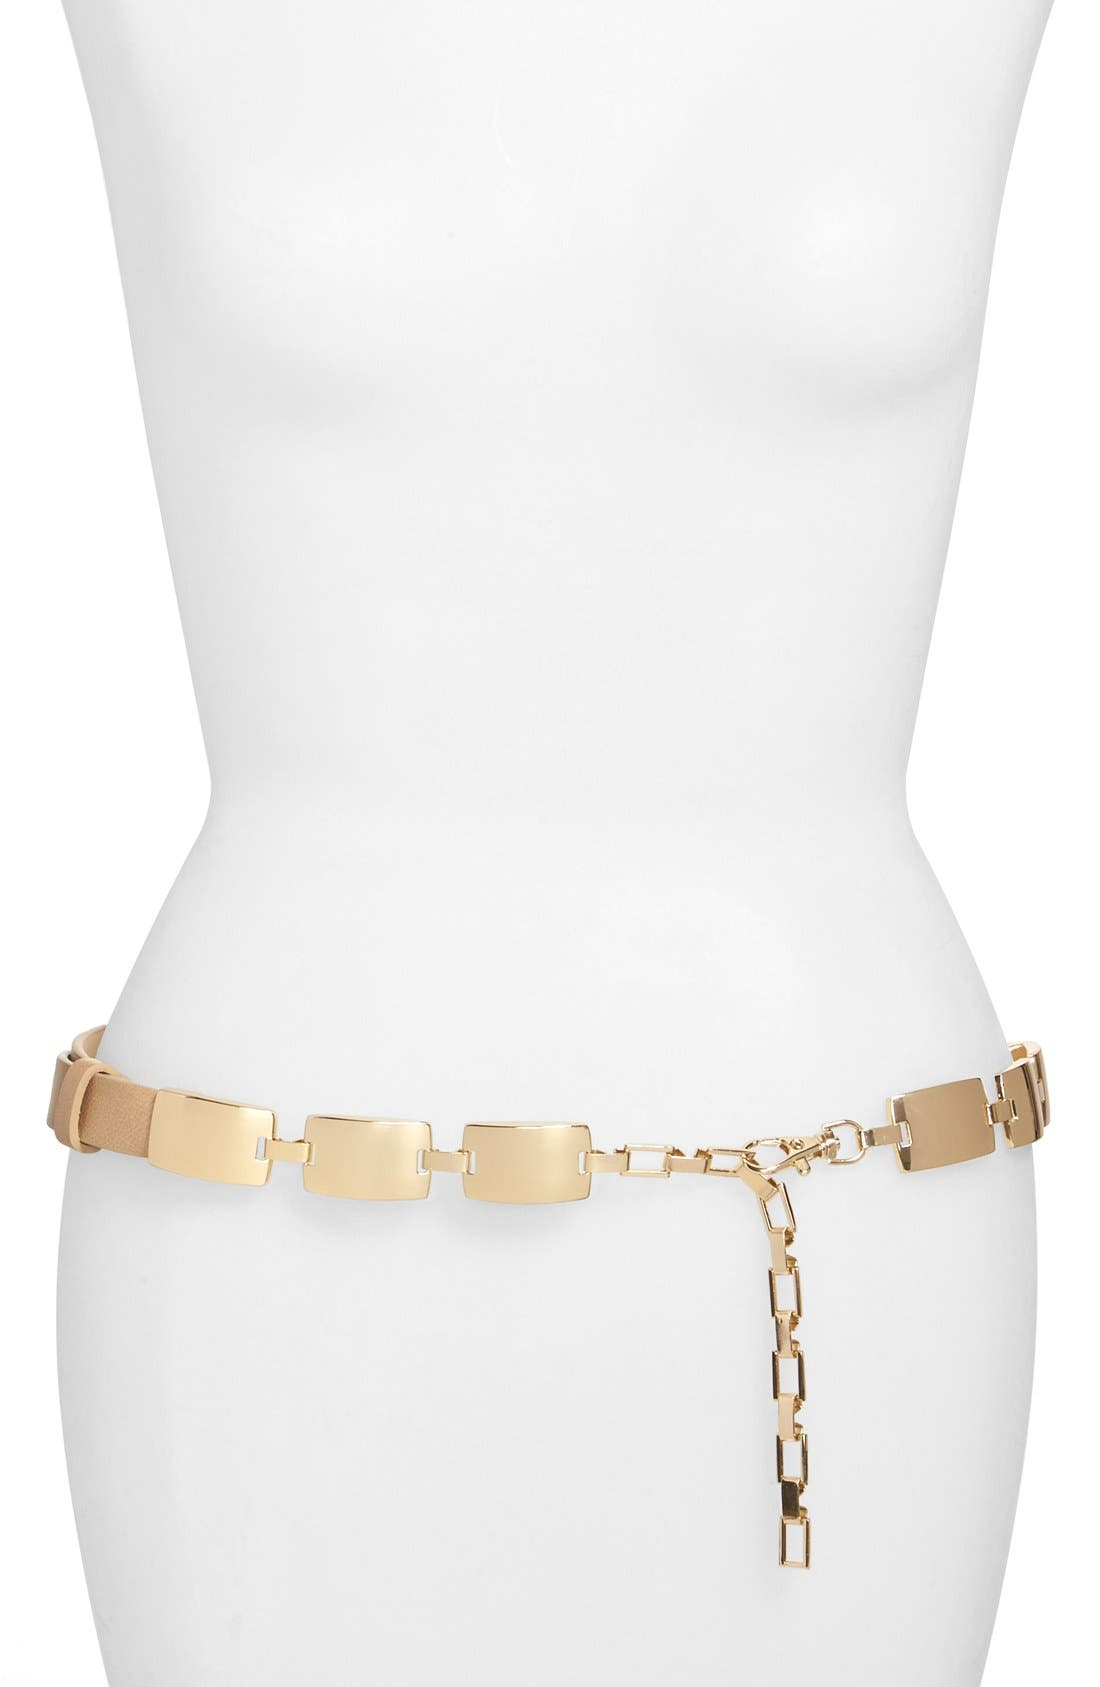 Alternate Image 1 Selected - Steven by Steve Madden Square Plaque Chain Belt